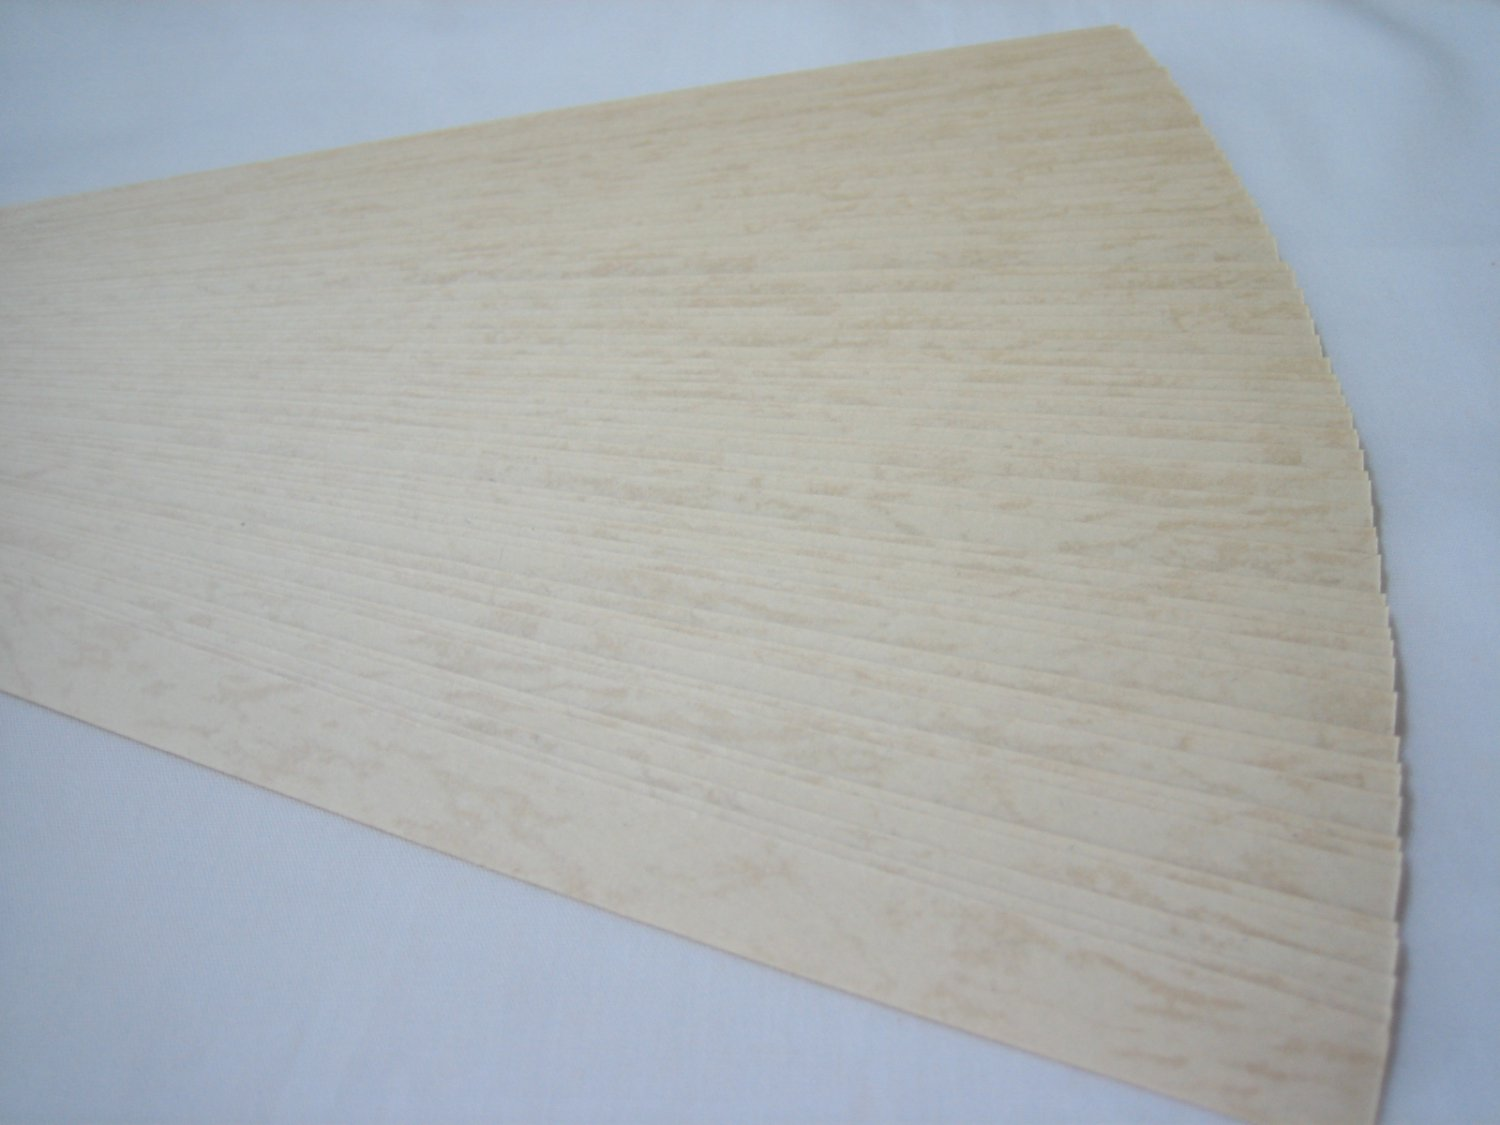 100 strips Embossed Pale Beige Origami Folding Lucky Star Paper Strips